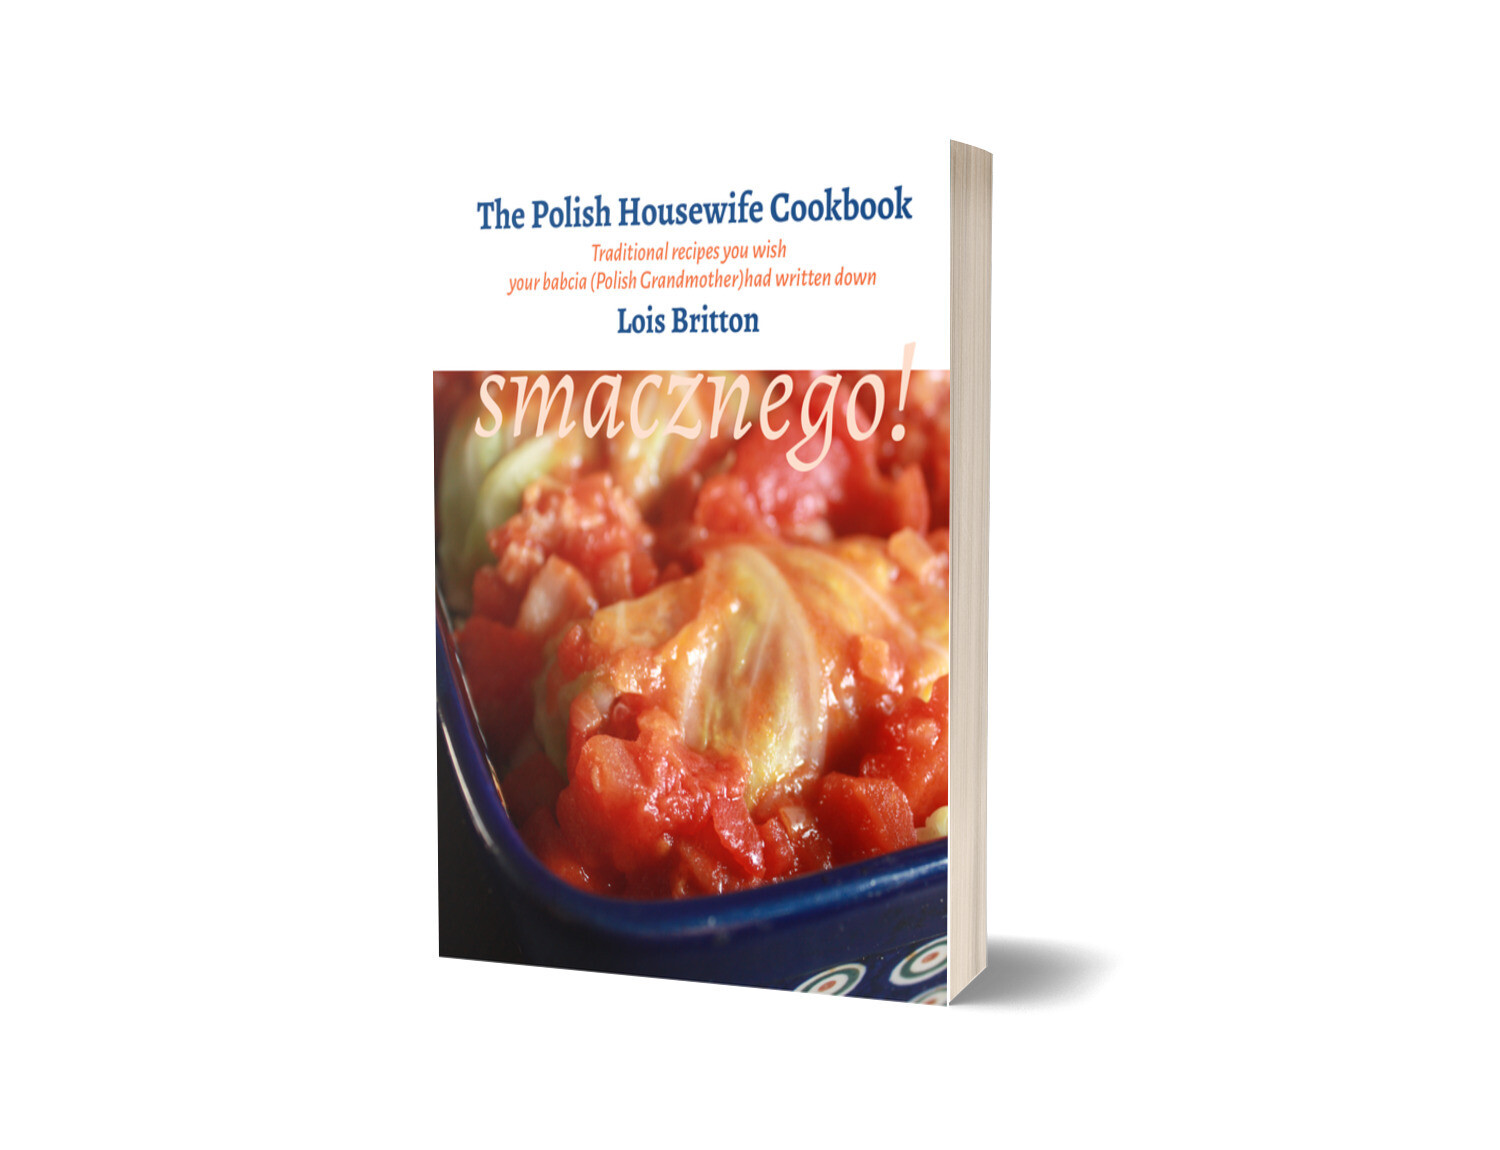 The Polish Housewife Cookbook